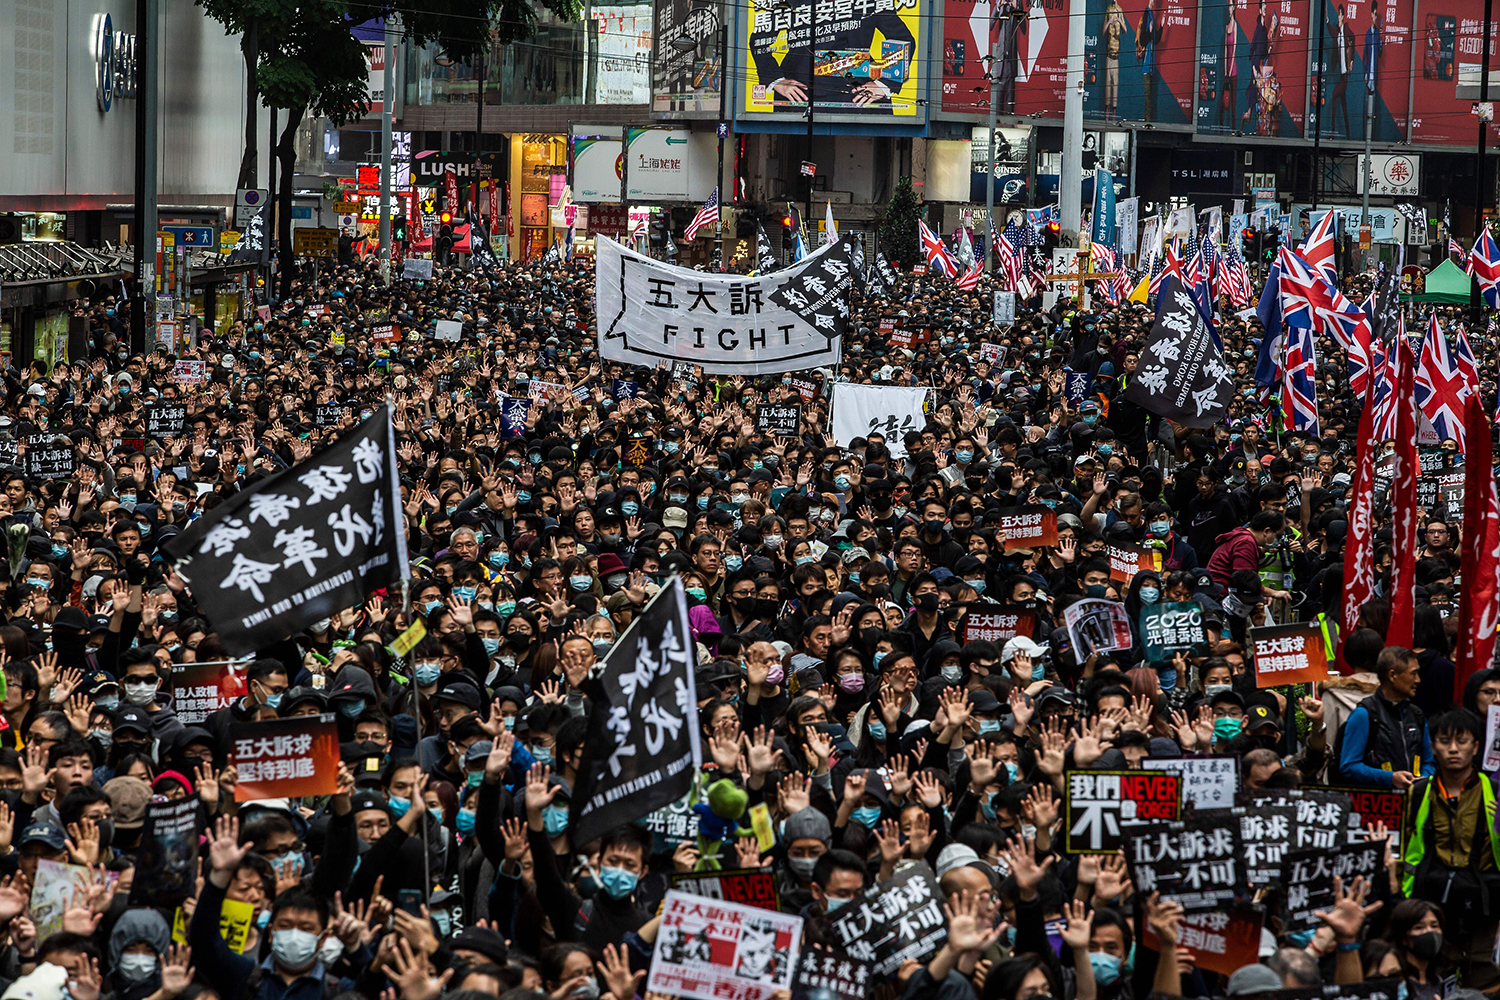 Tens of thousands of protesters take part in a pro-democracy march in Hong Kong on Jan. 1. ISAAC LAWRENCE/AFP via Getty Images